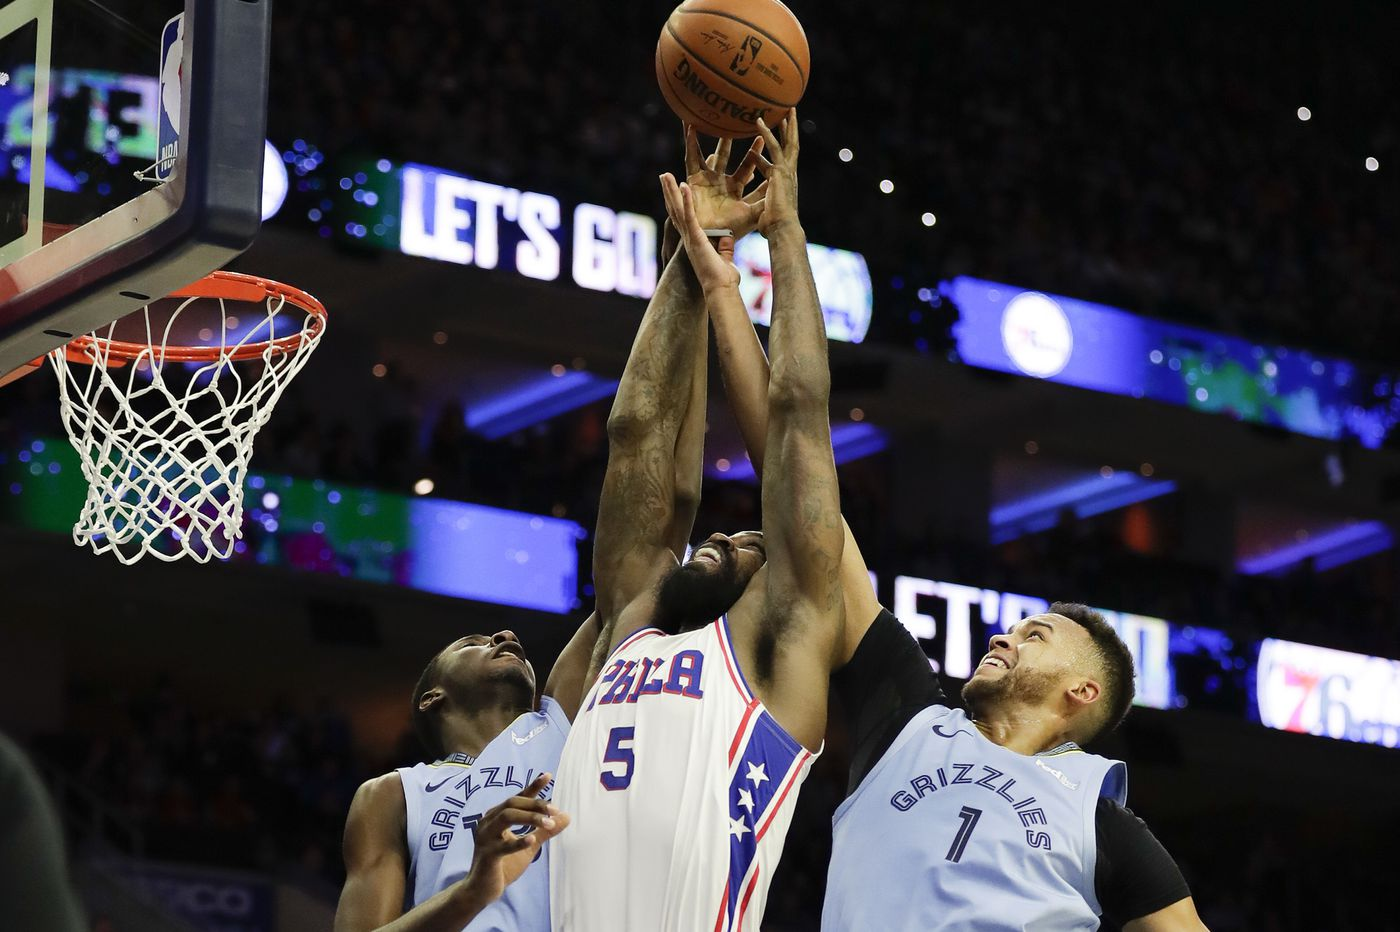 Sixers' veteran Amir Johnson opts to play for Delaware Blue Coats